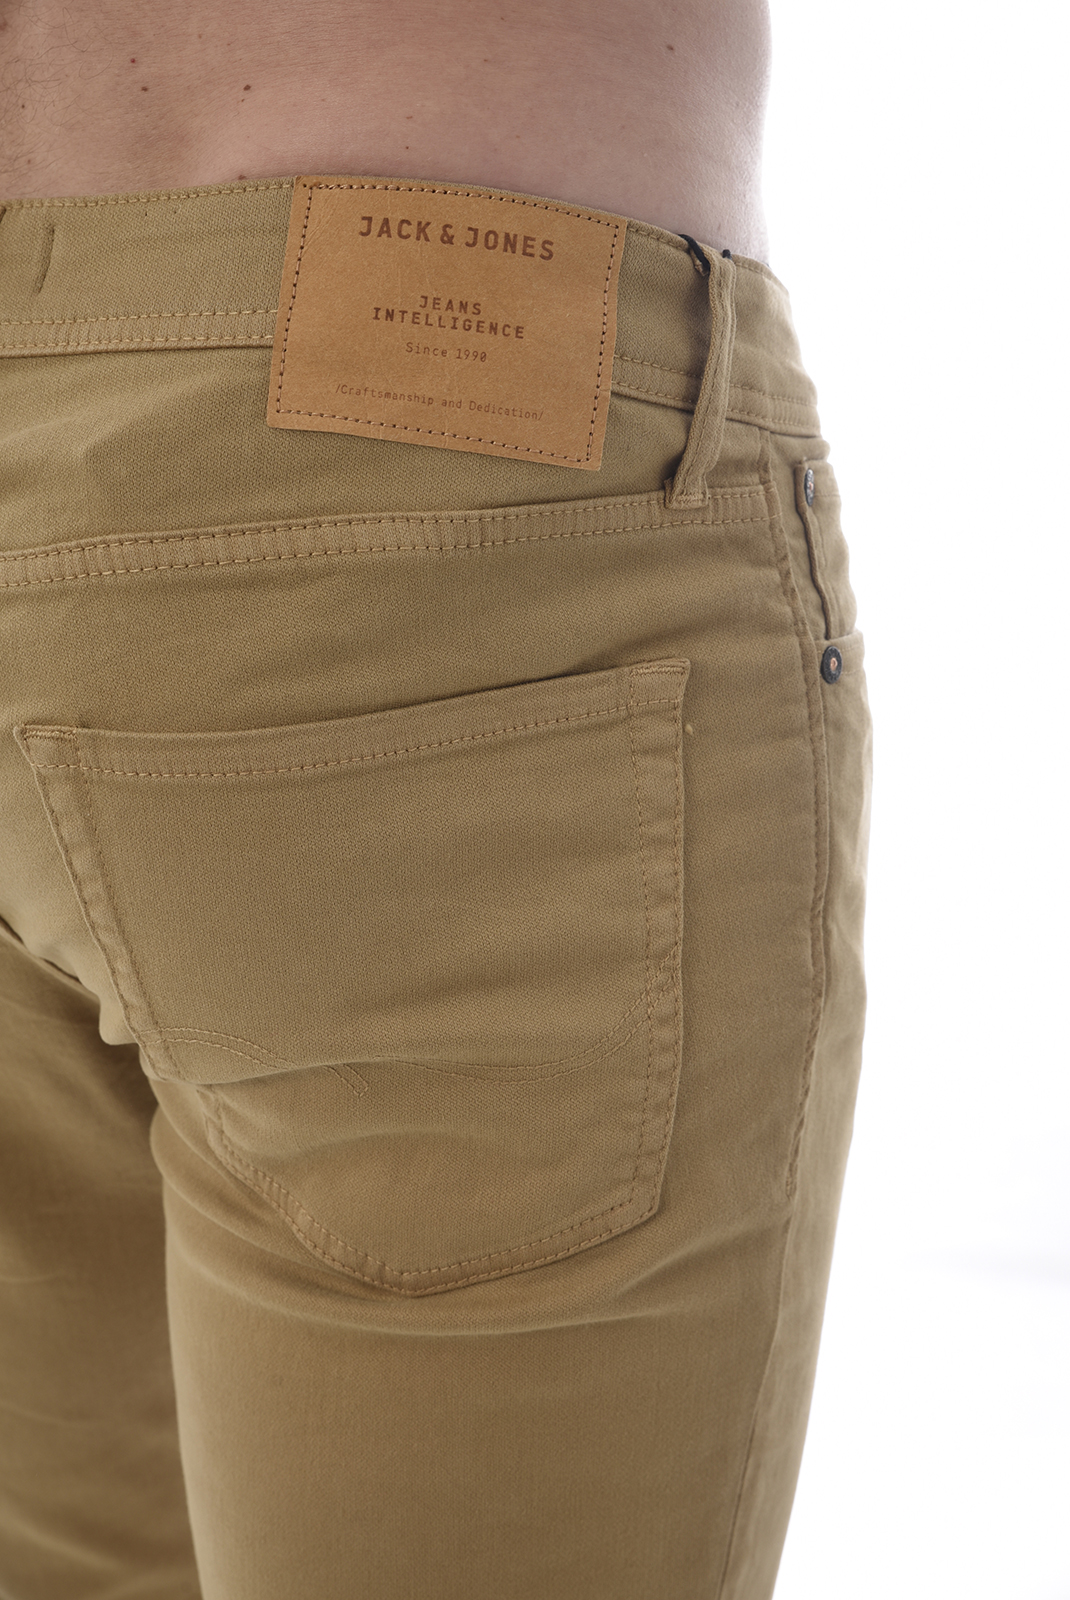 JACK AND JONES PANTALON GLENN ORIGINAL AKM 696 BEIGE MARRON HOMME